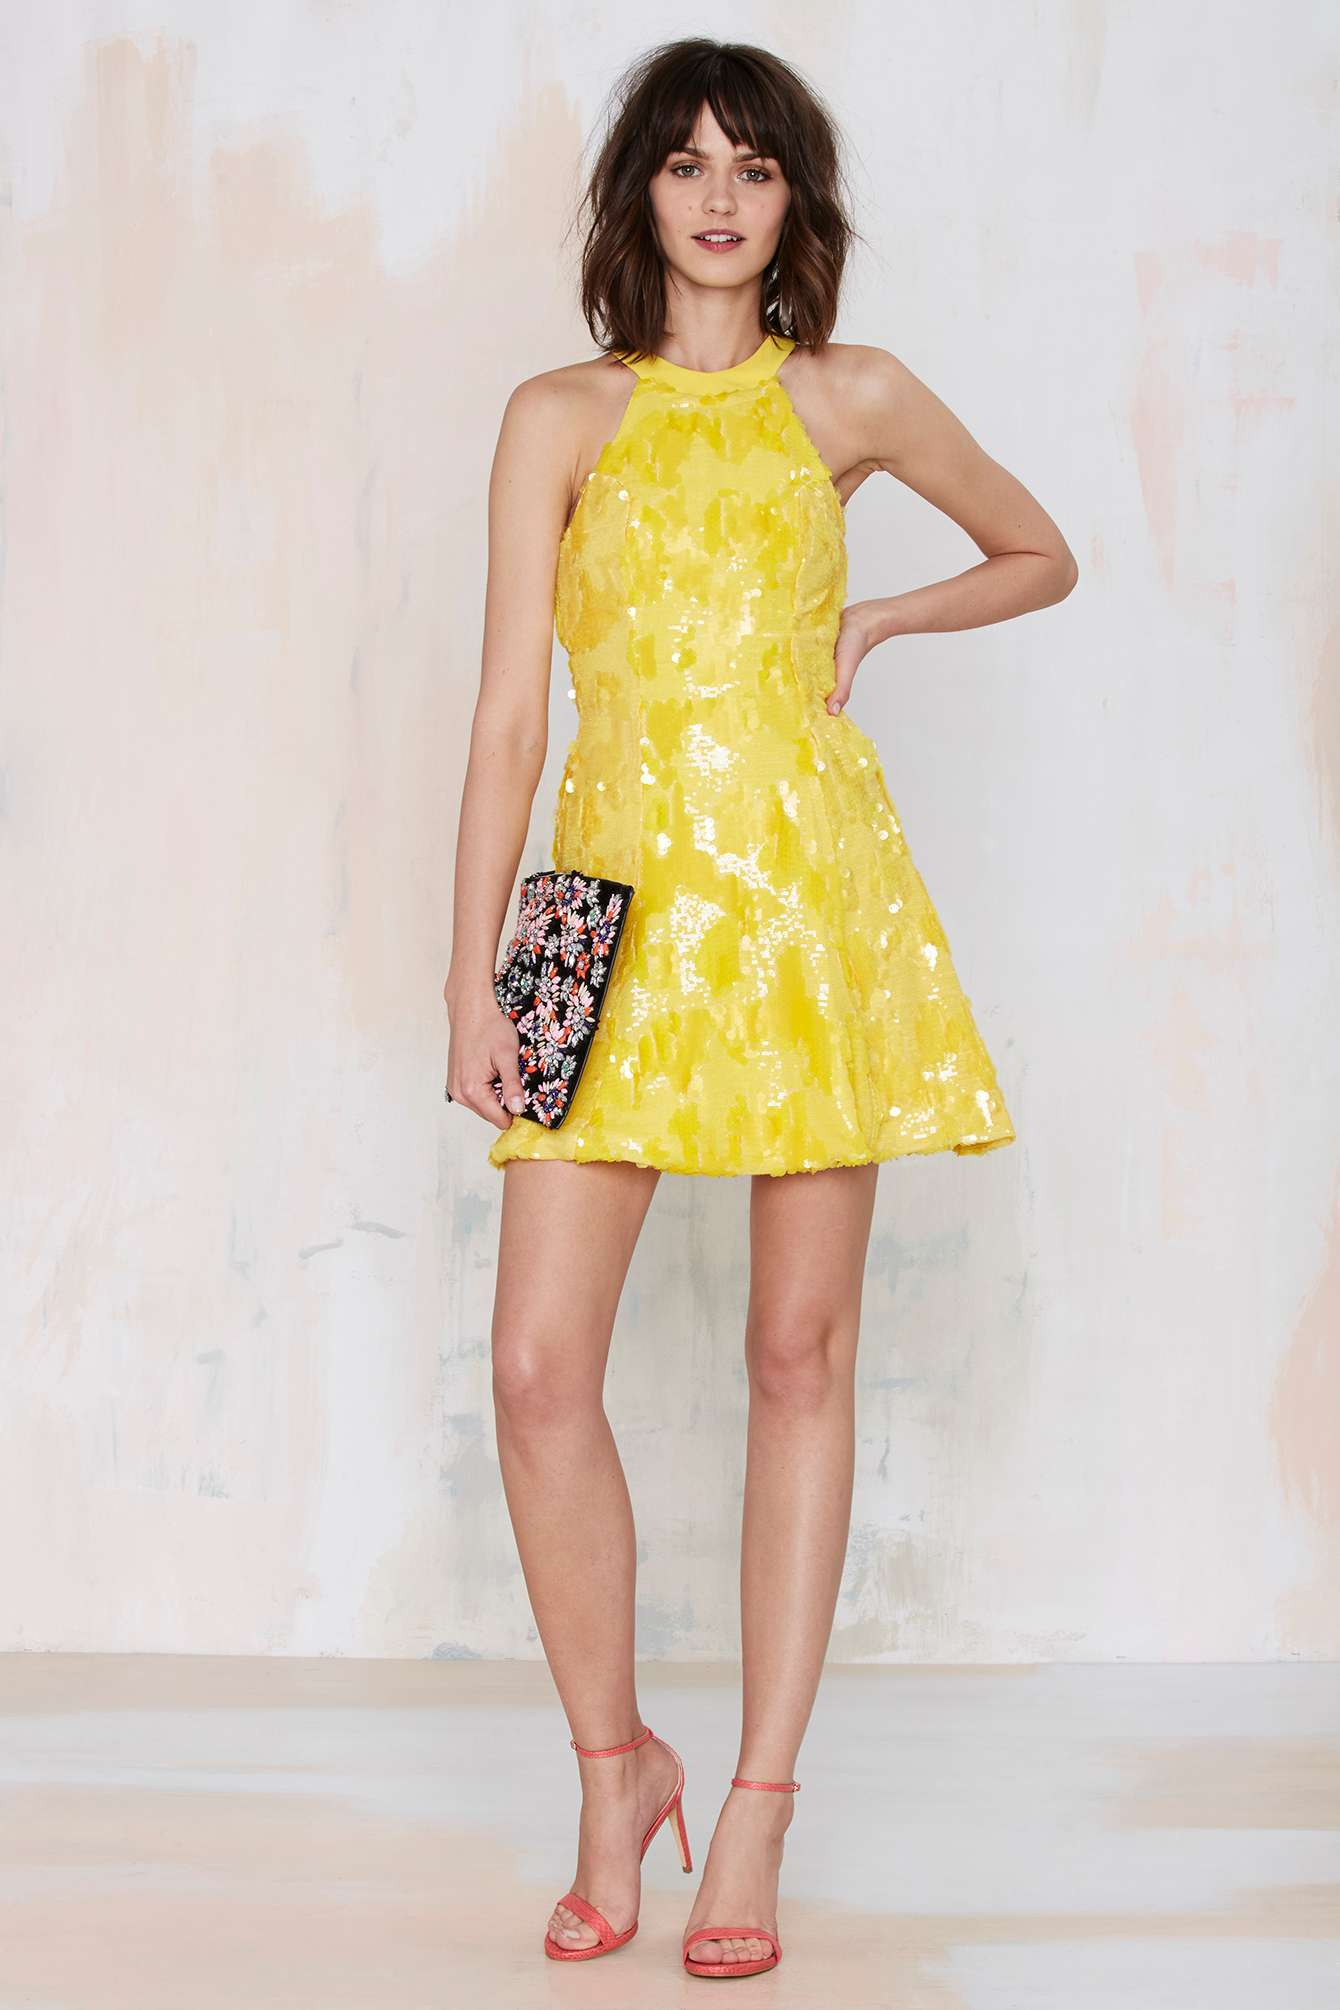 lyst  dress the population anni sequin dress  yellow in